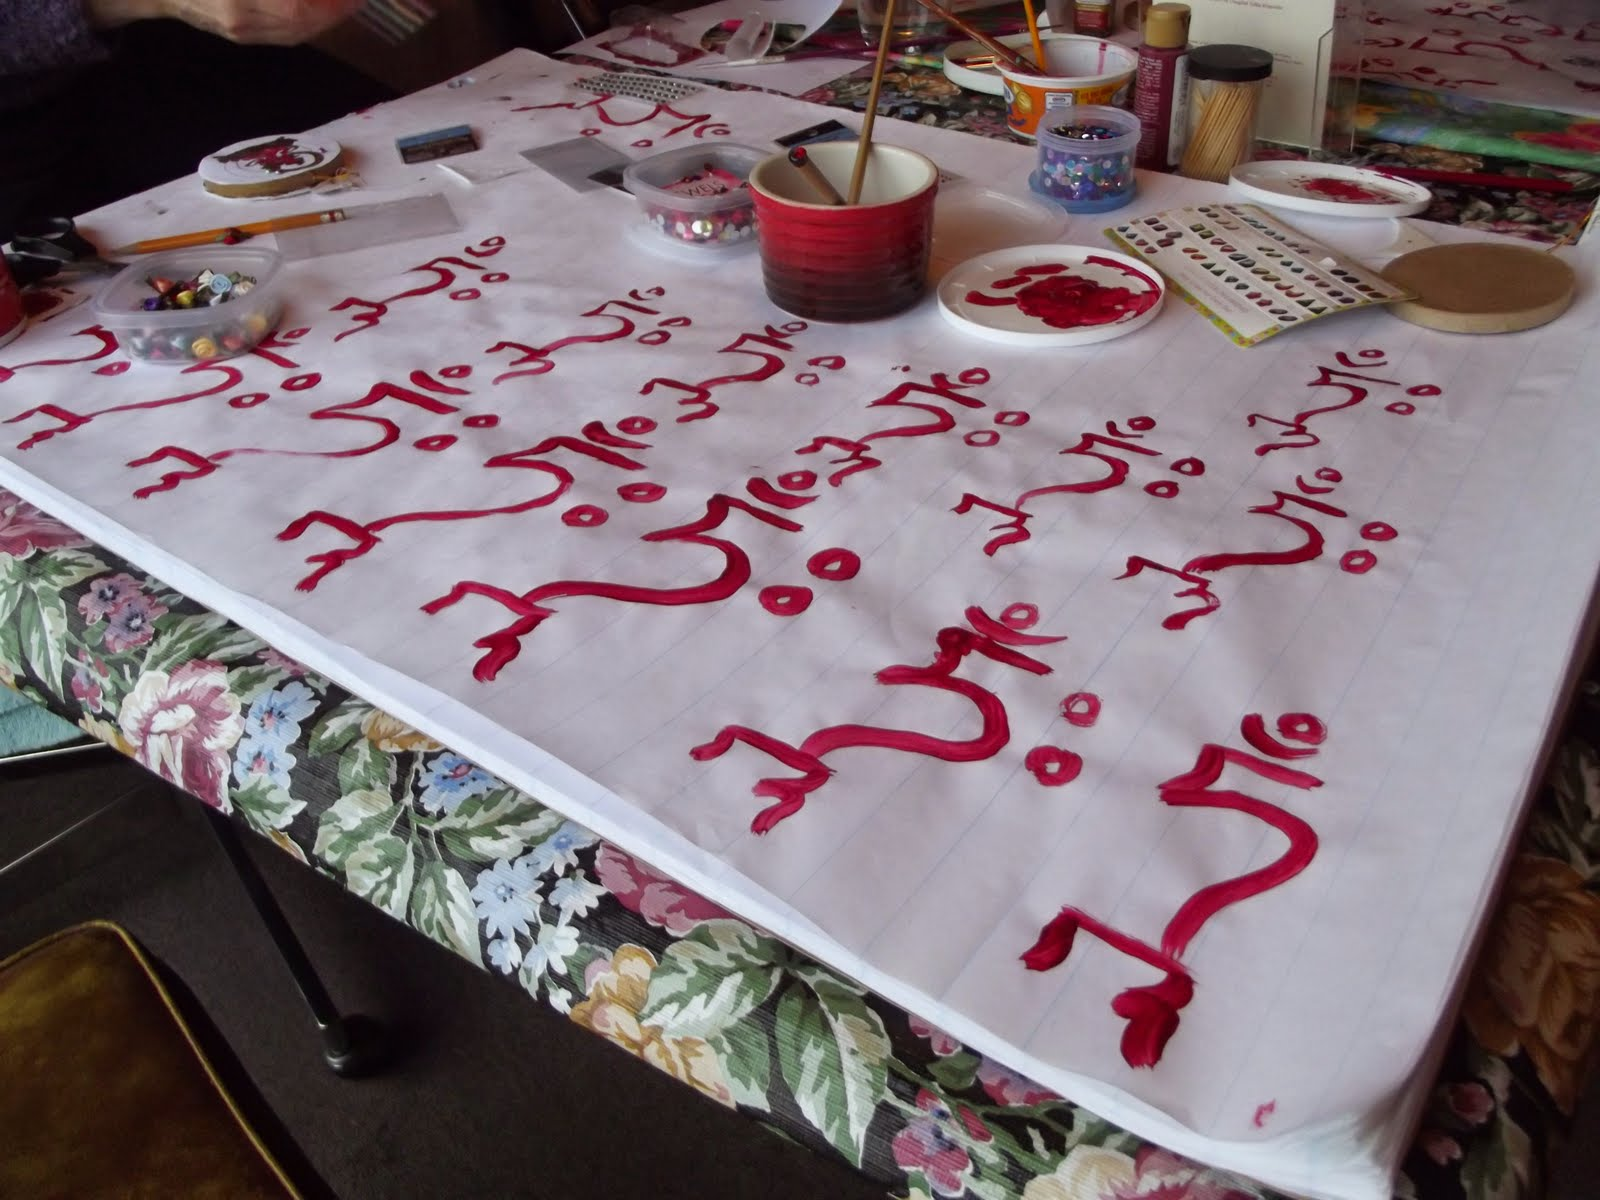 sacred syllable painting